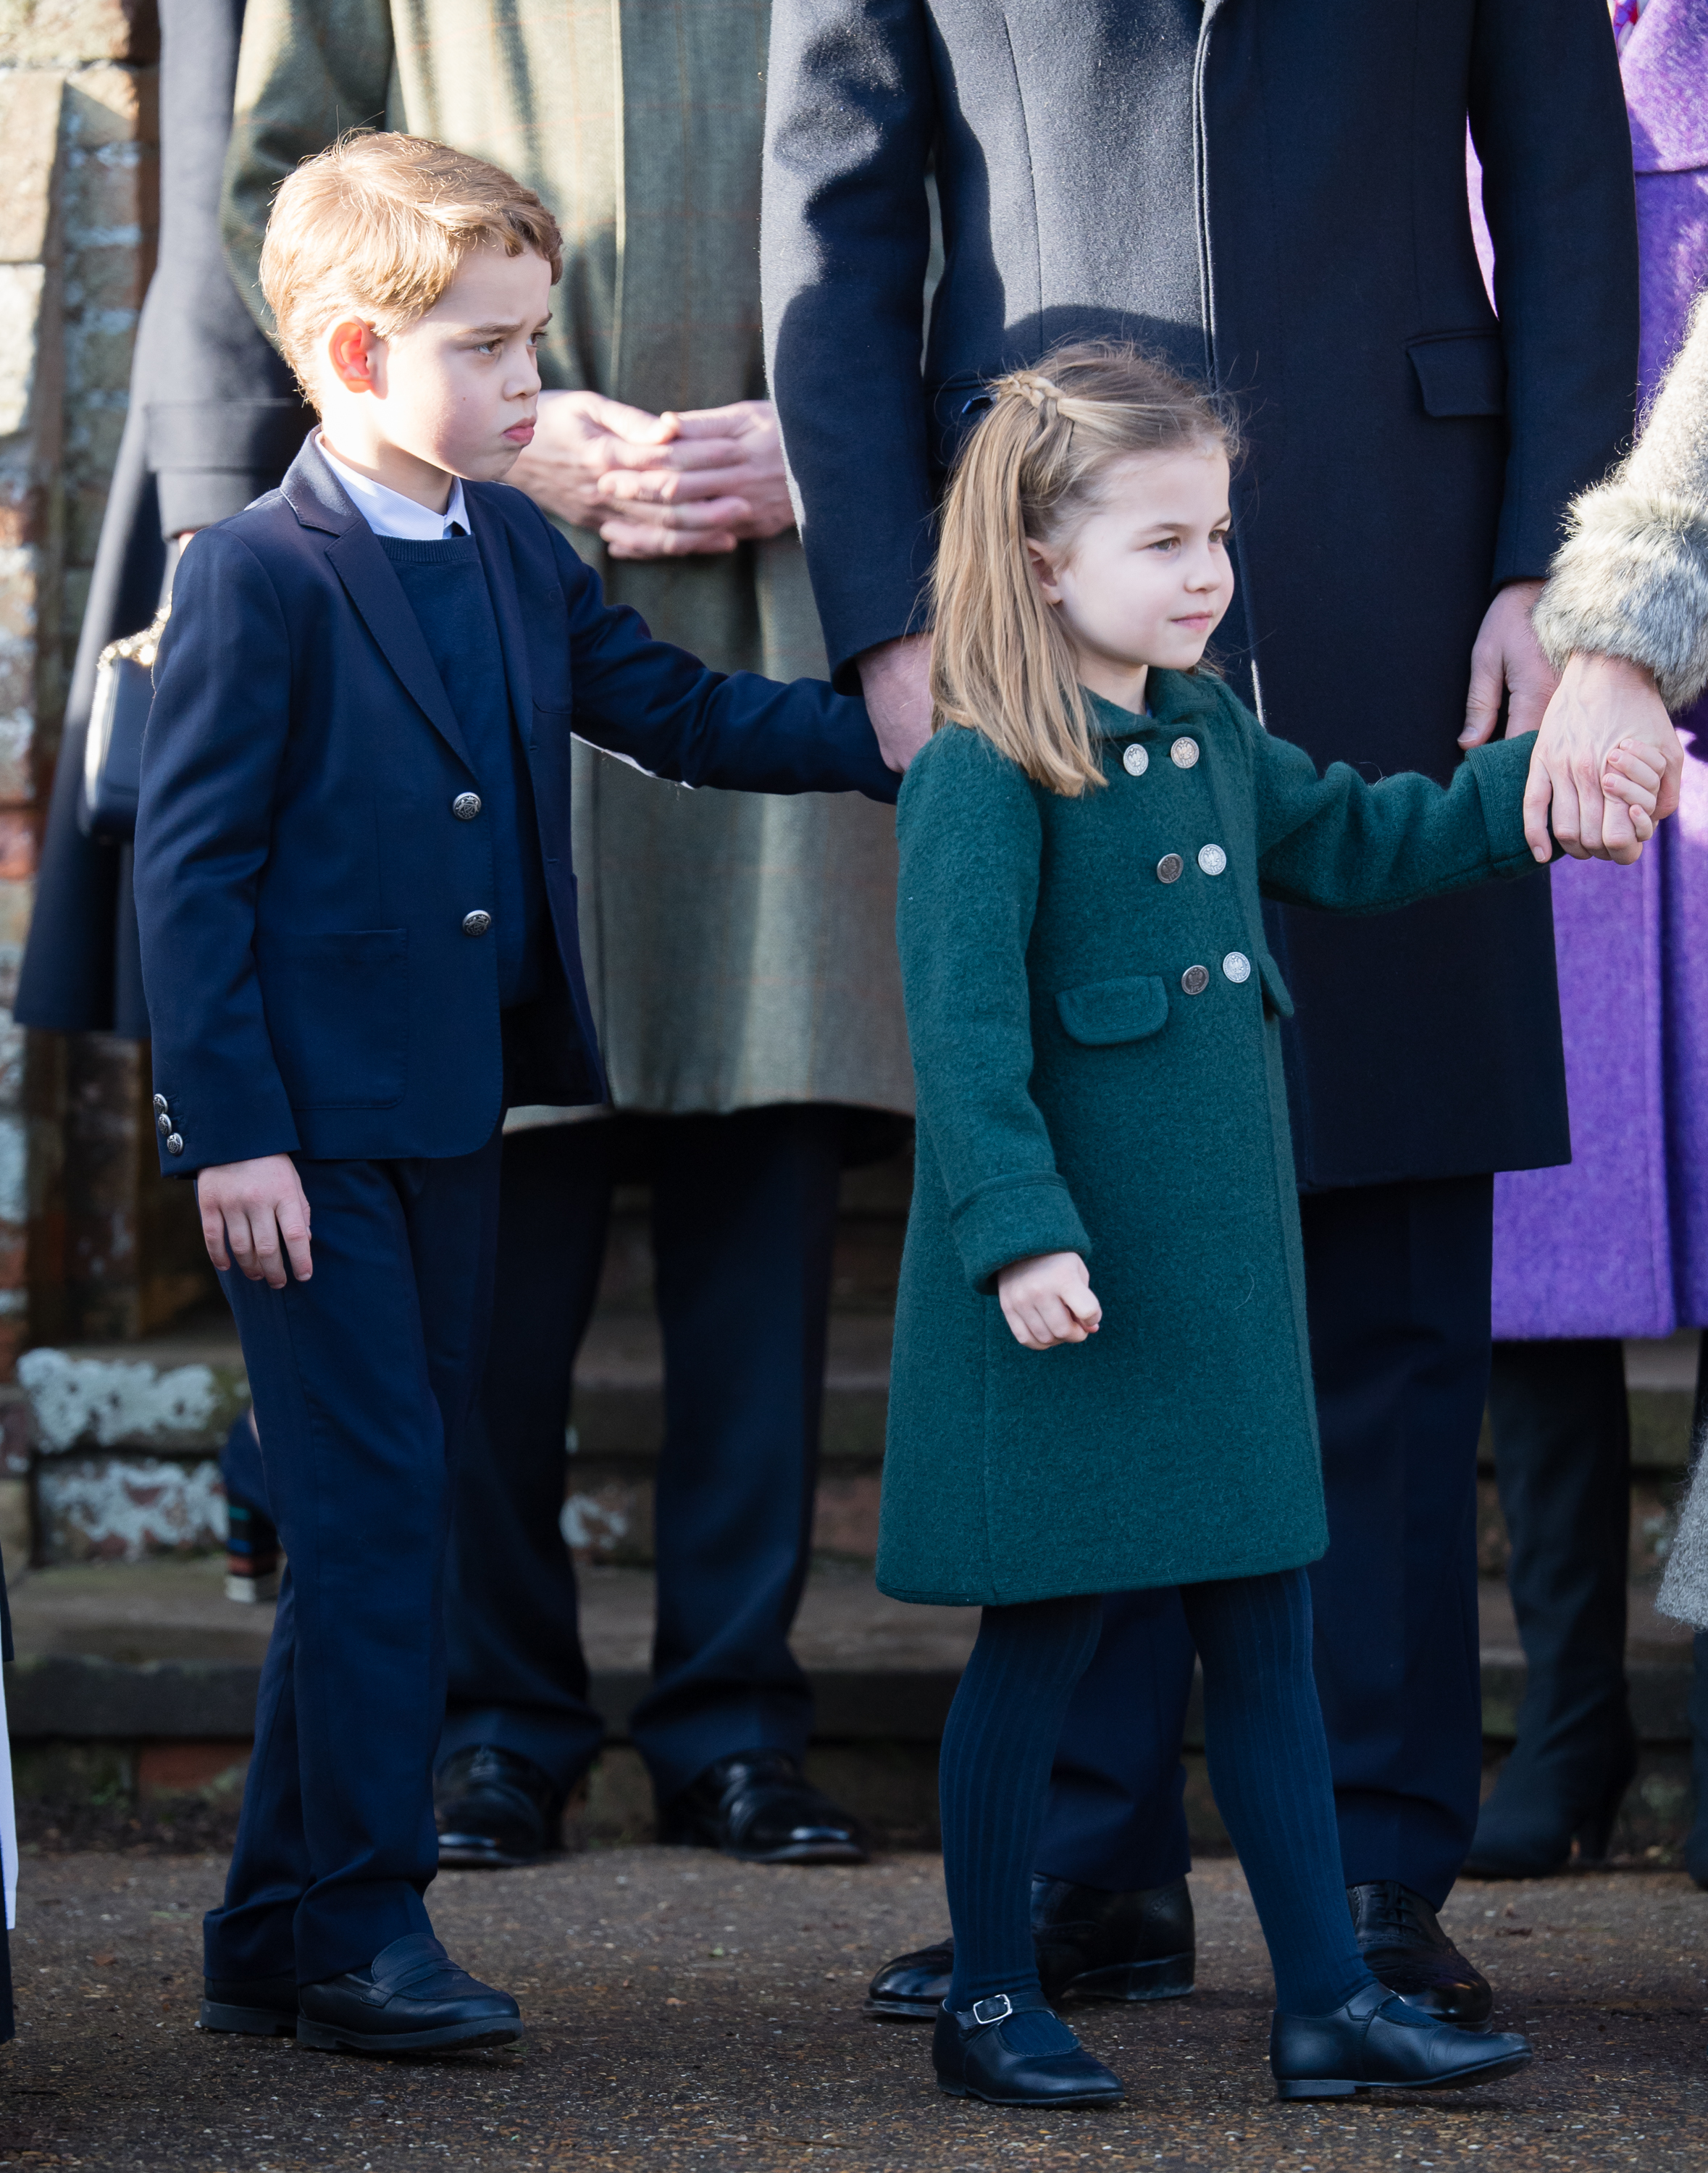 KING'S LYNN, ENGLAND - DECEMBER 25: Prince George of Cambridge and  Princess Charlotte of Cambridge attend the Christmas Day Church service at Church of St Mary Magdalene on the Sandringham estate on December 25, 2019 in King's Lynn, United Kingdom. (Photo by Pool/Samir Hussein/WireImage)